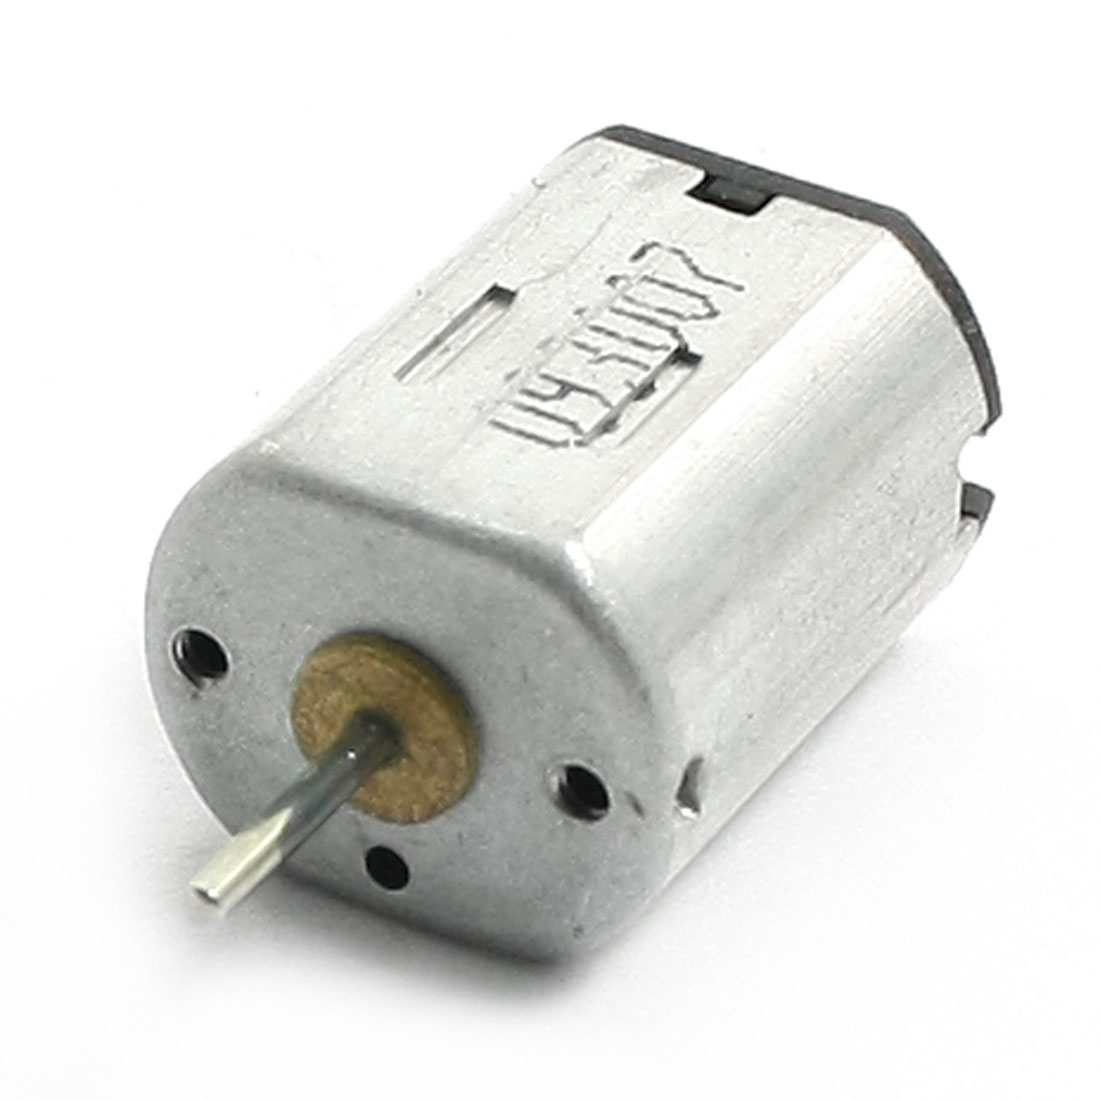 1mm-Shaft-Dia-Electric-Mini-Vibrate-Vibration-Motor-12000RPM-DC-3V